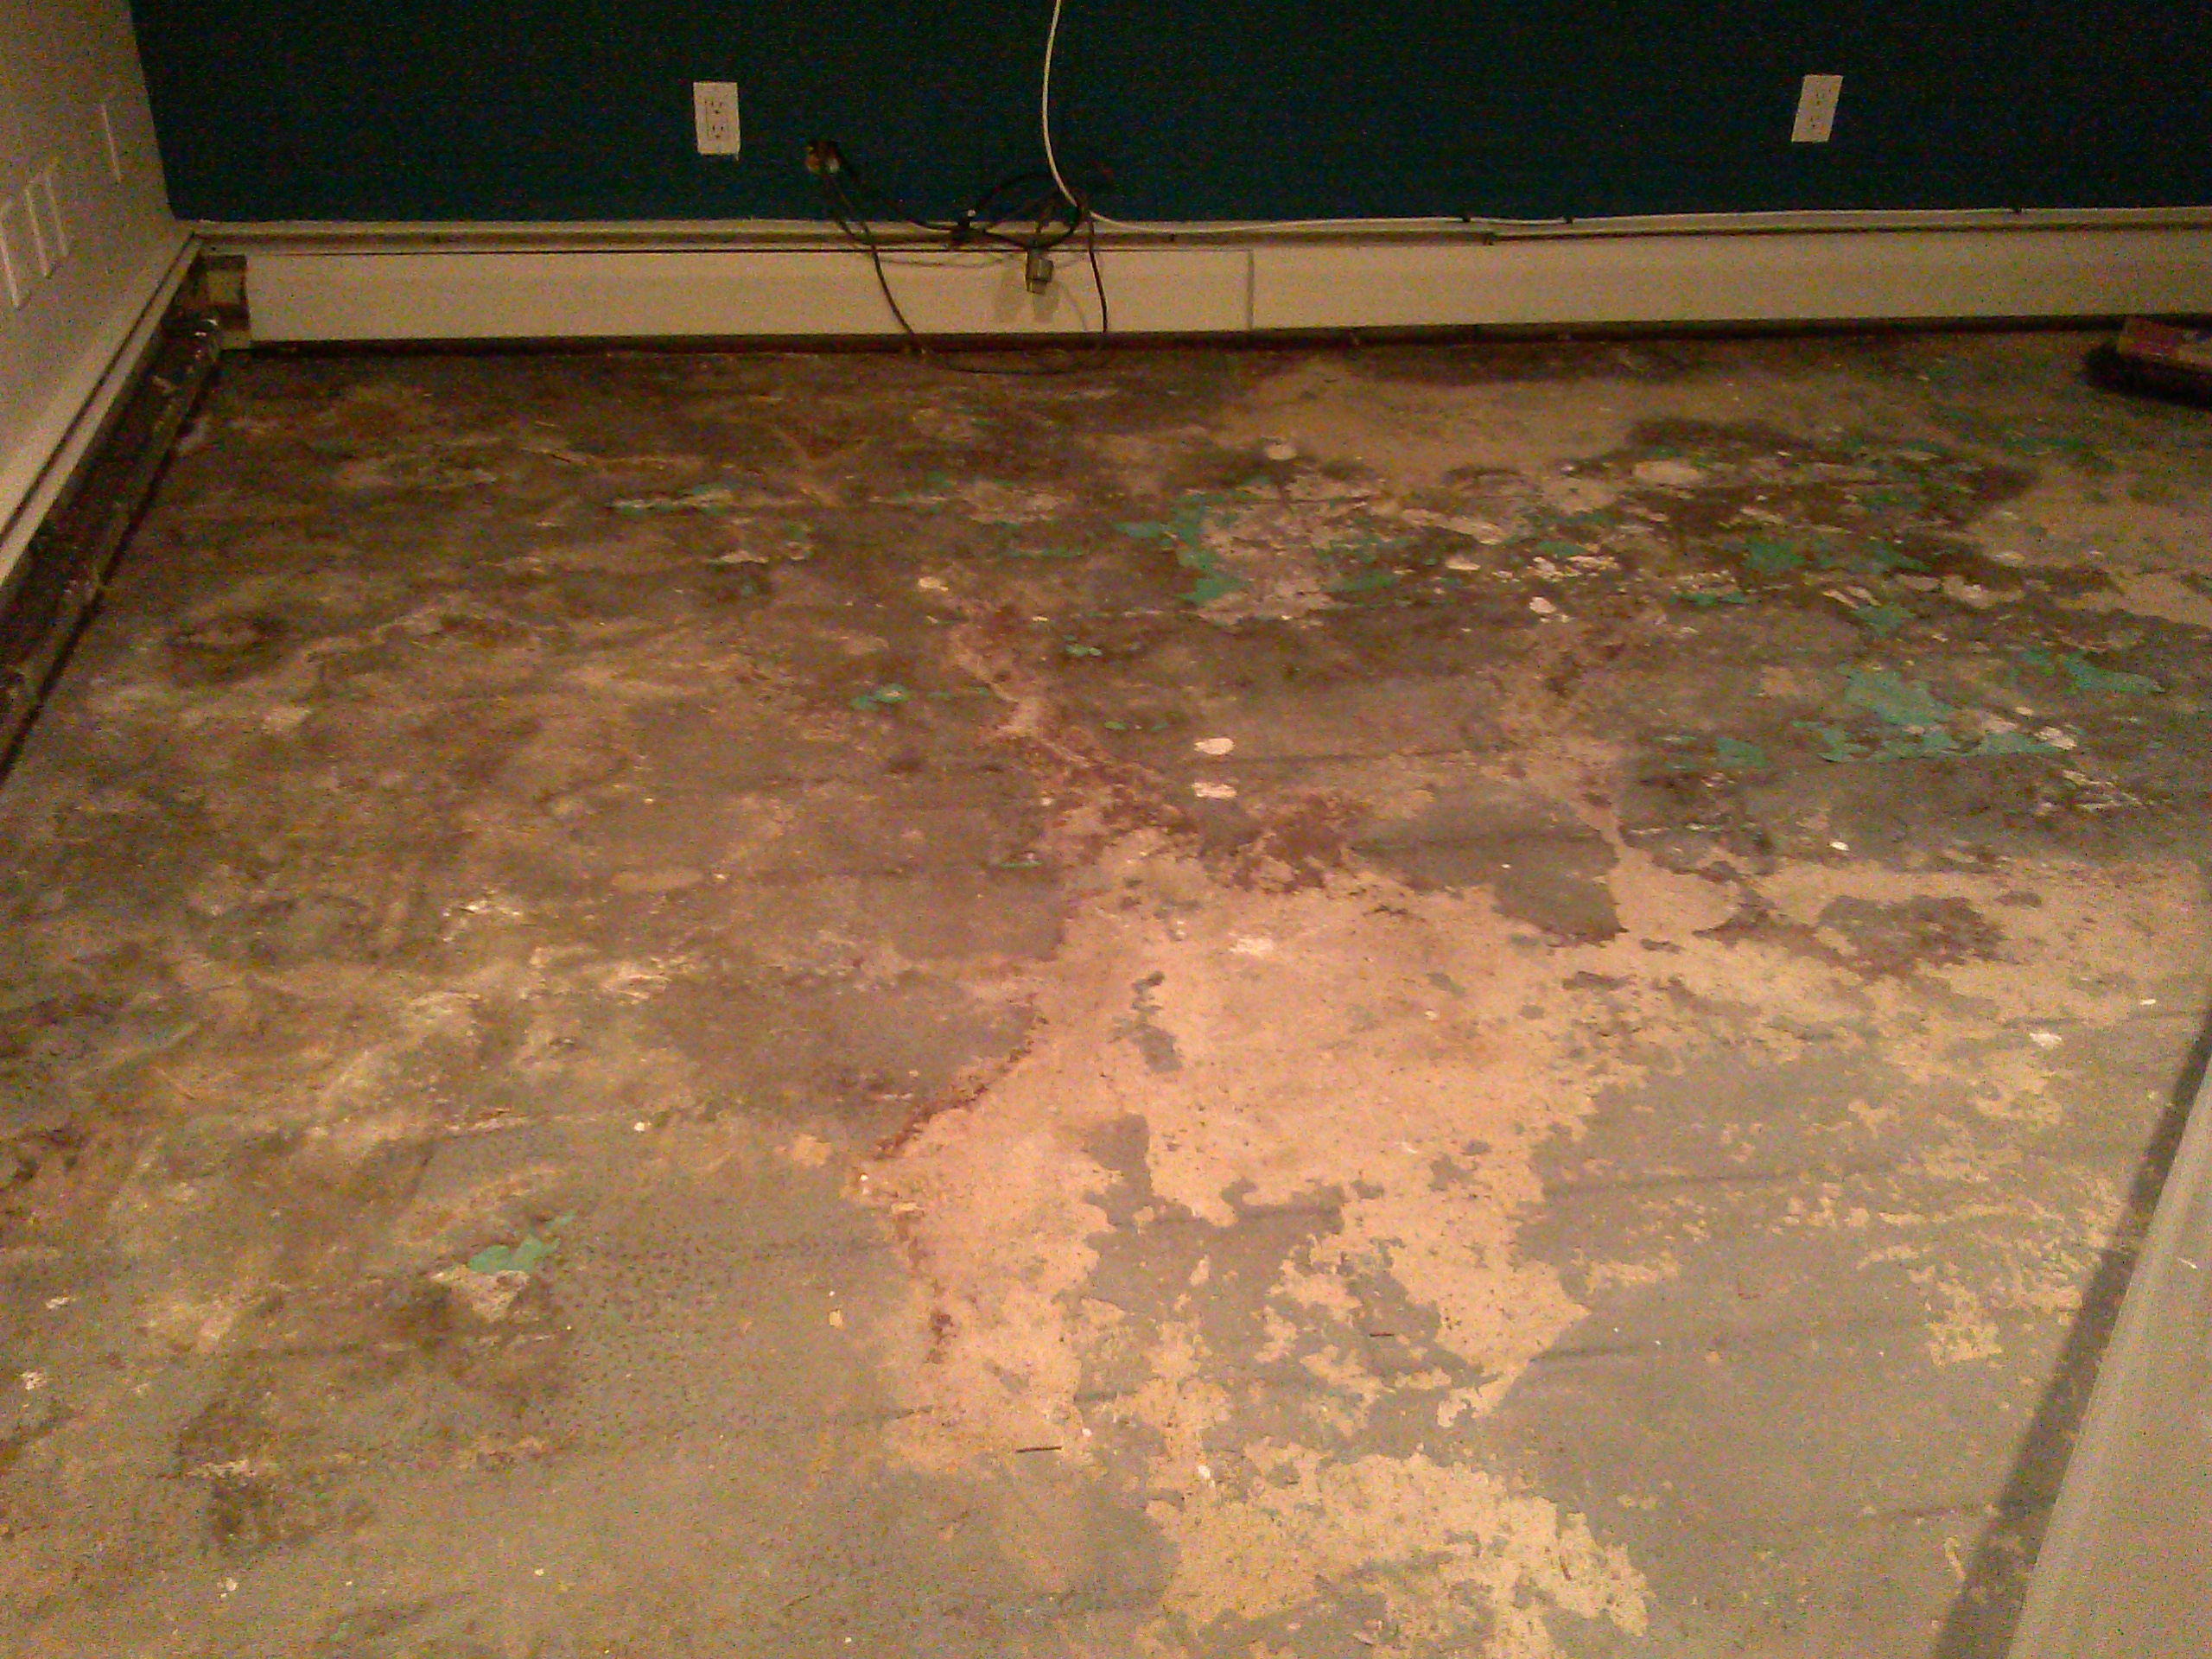 Basement slab needing prep-work for new finishes